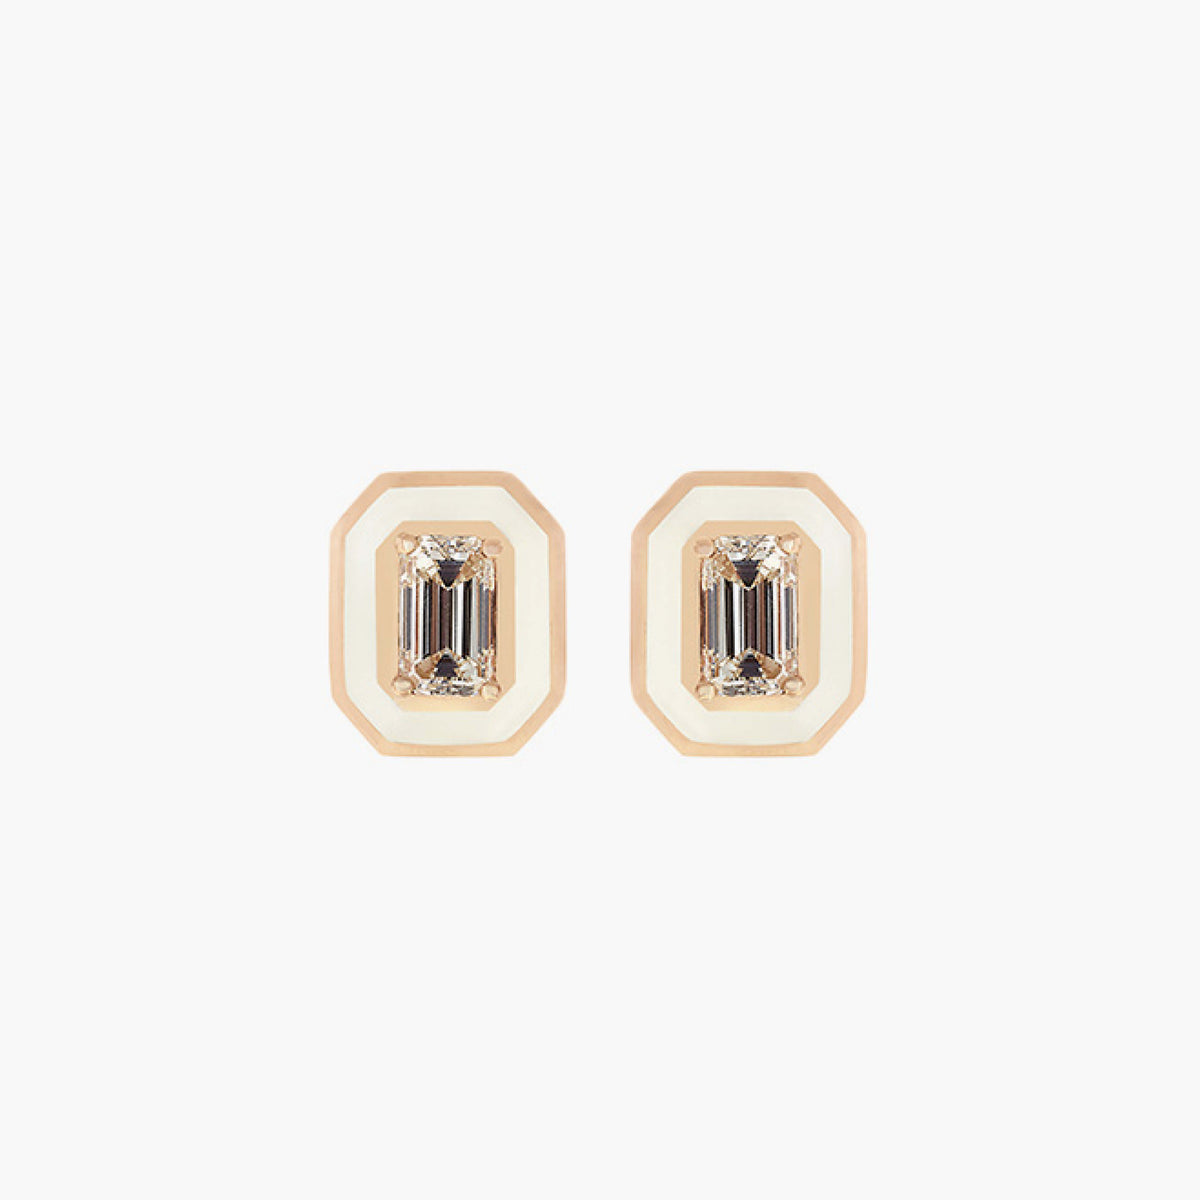 Ivory Enamel & Diamonds Earrings